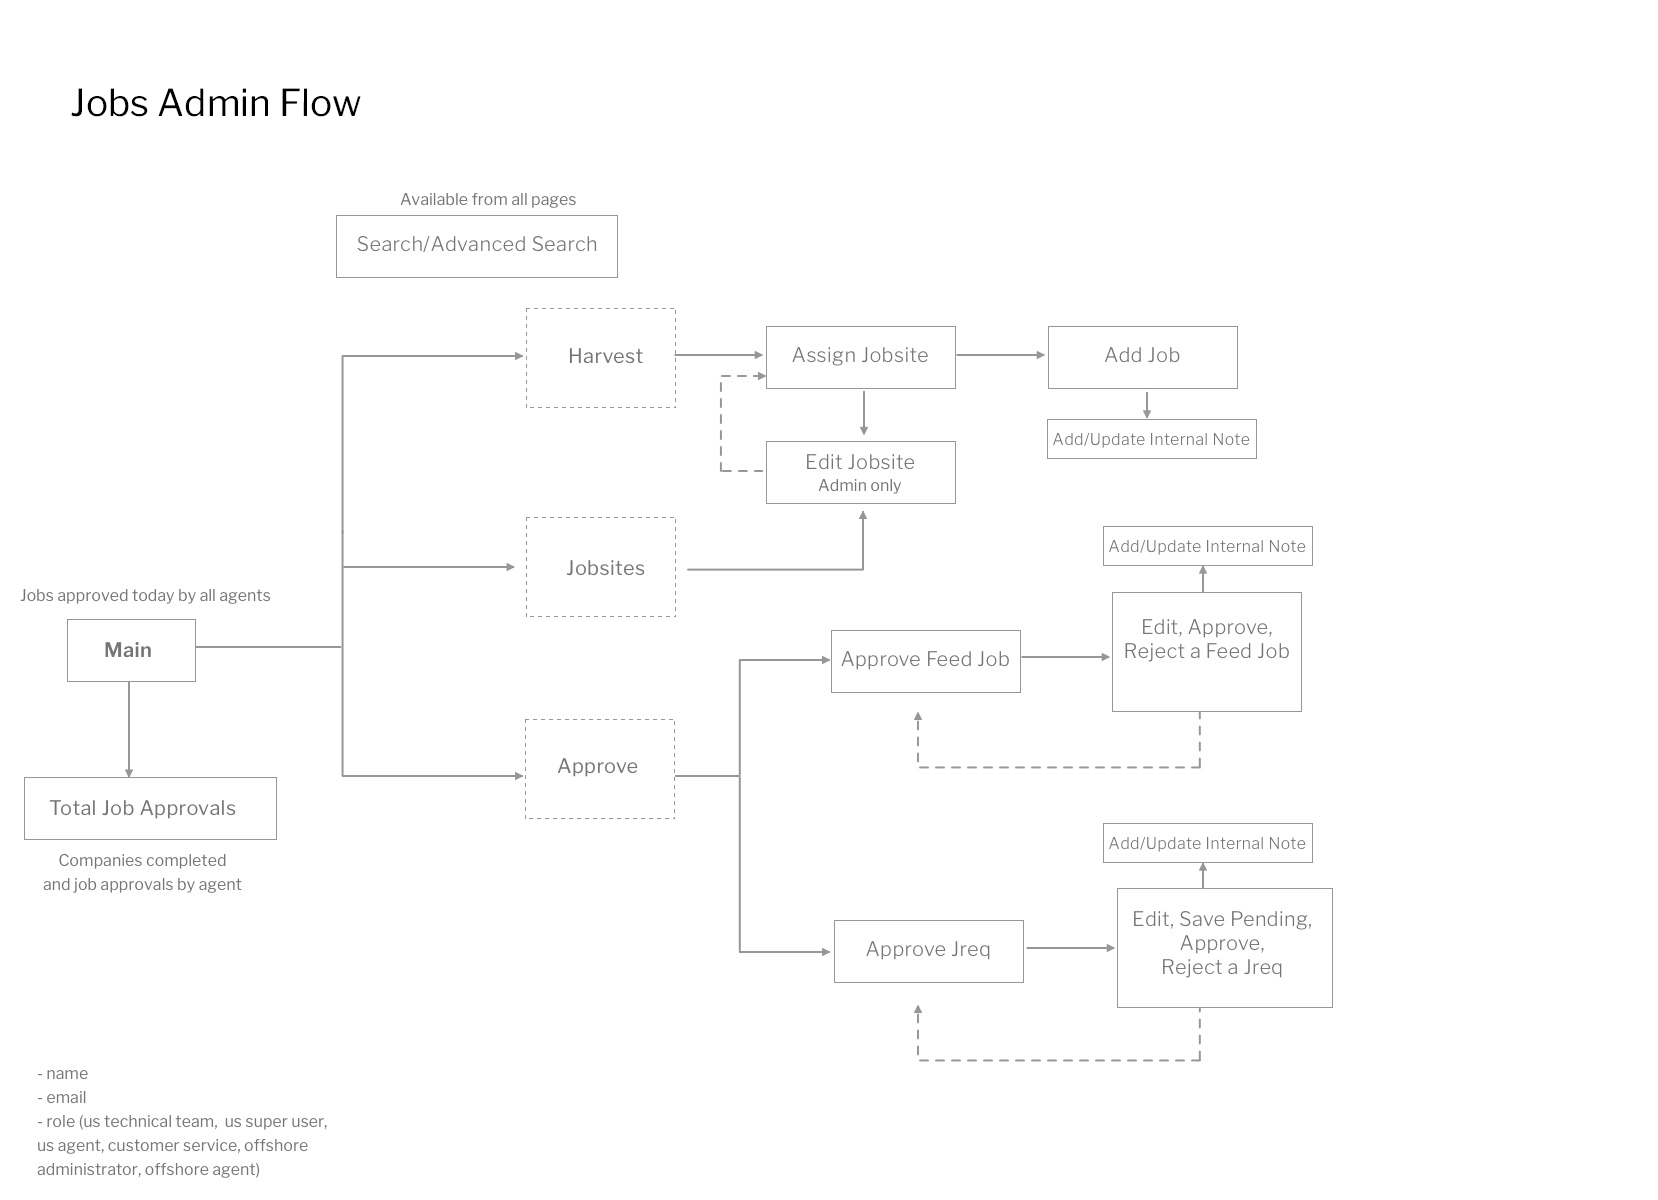 Jobs-Admin-Flow.png